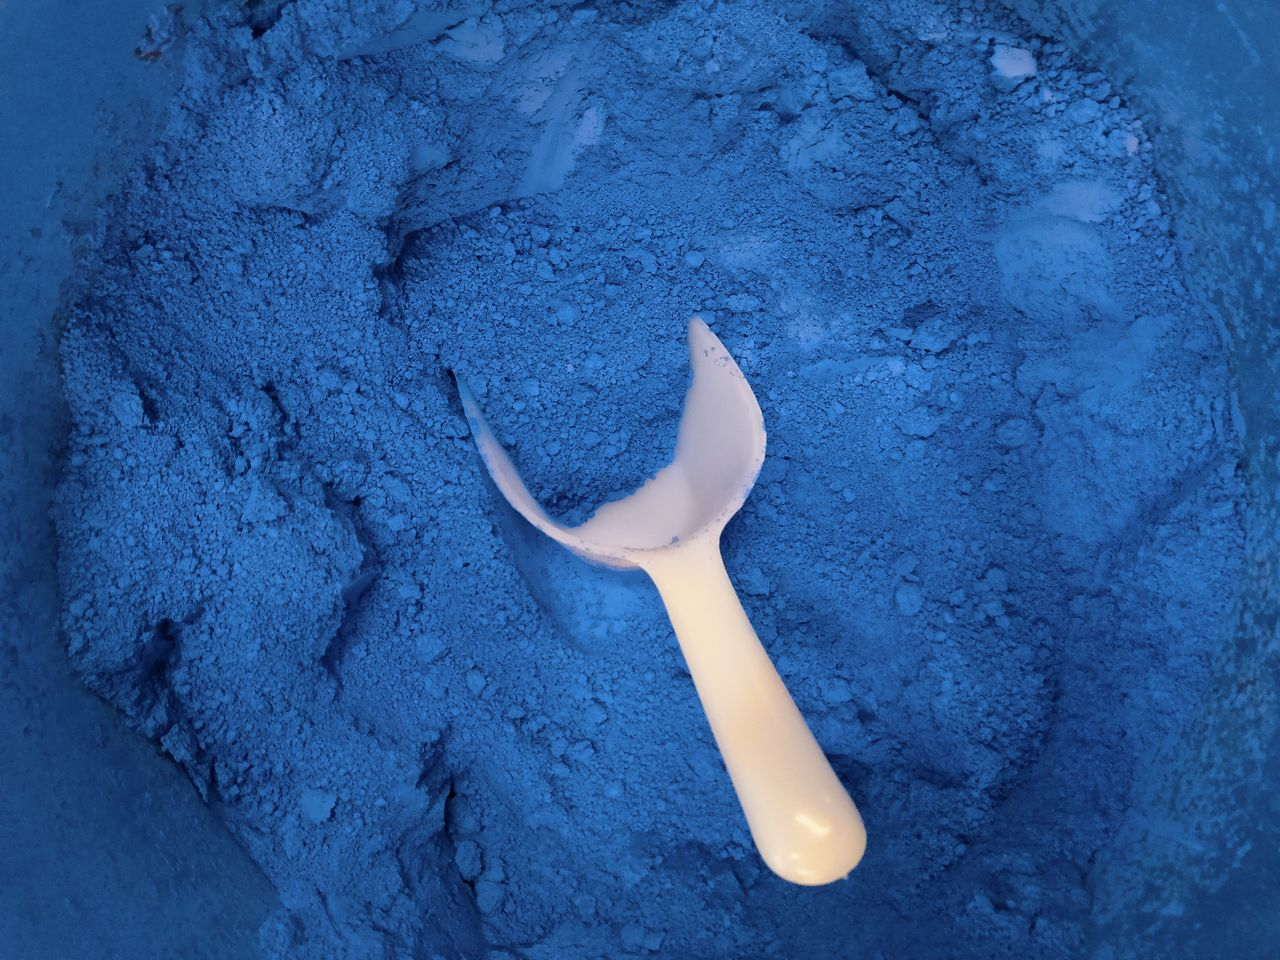 High Angle View Of Blue Powder Paint With Spatula